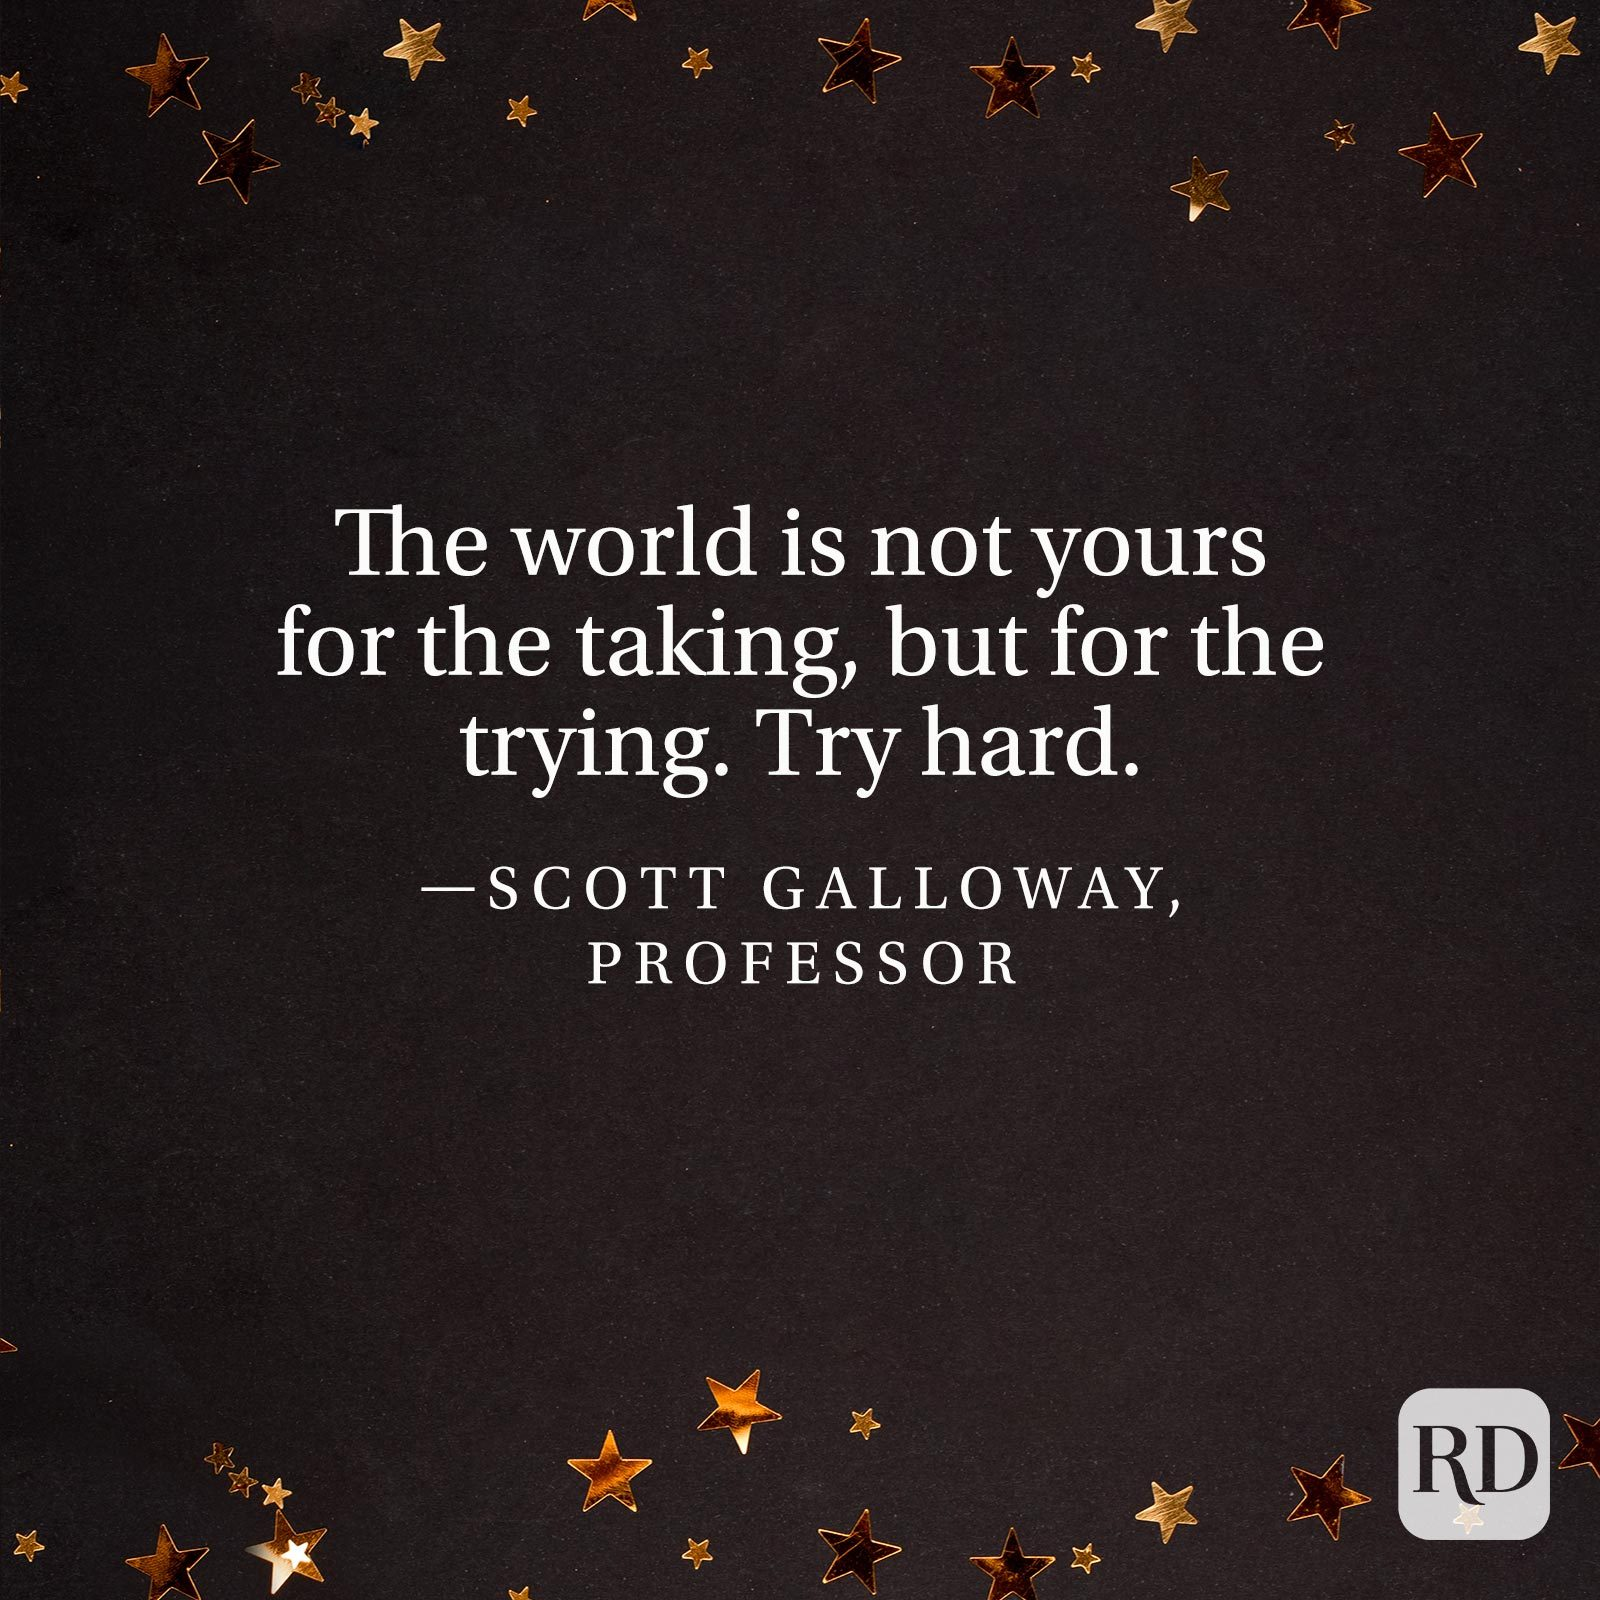 """The world is not yours for the taking, but for the trying. Try hard."" —Scott Galloway, professor"